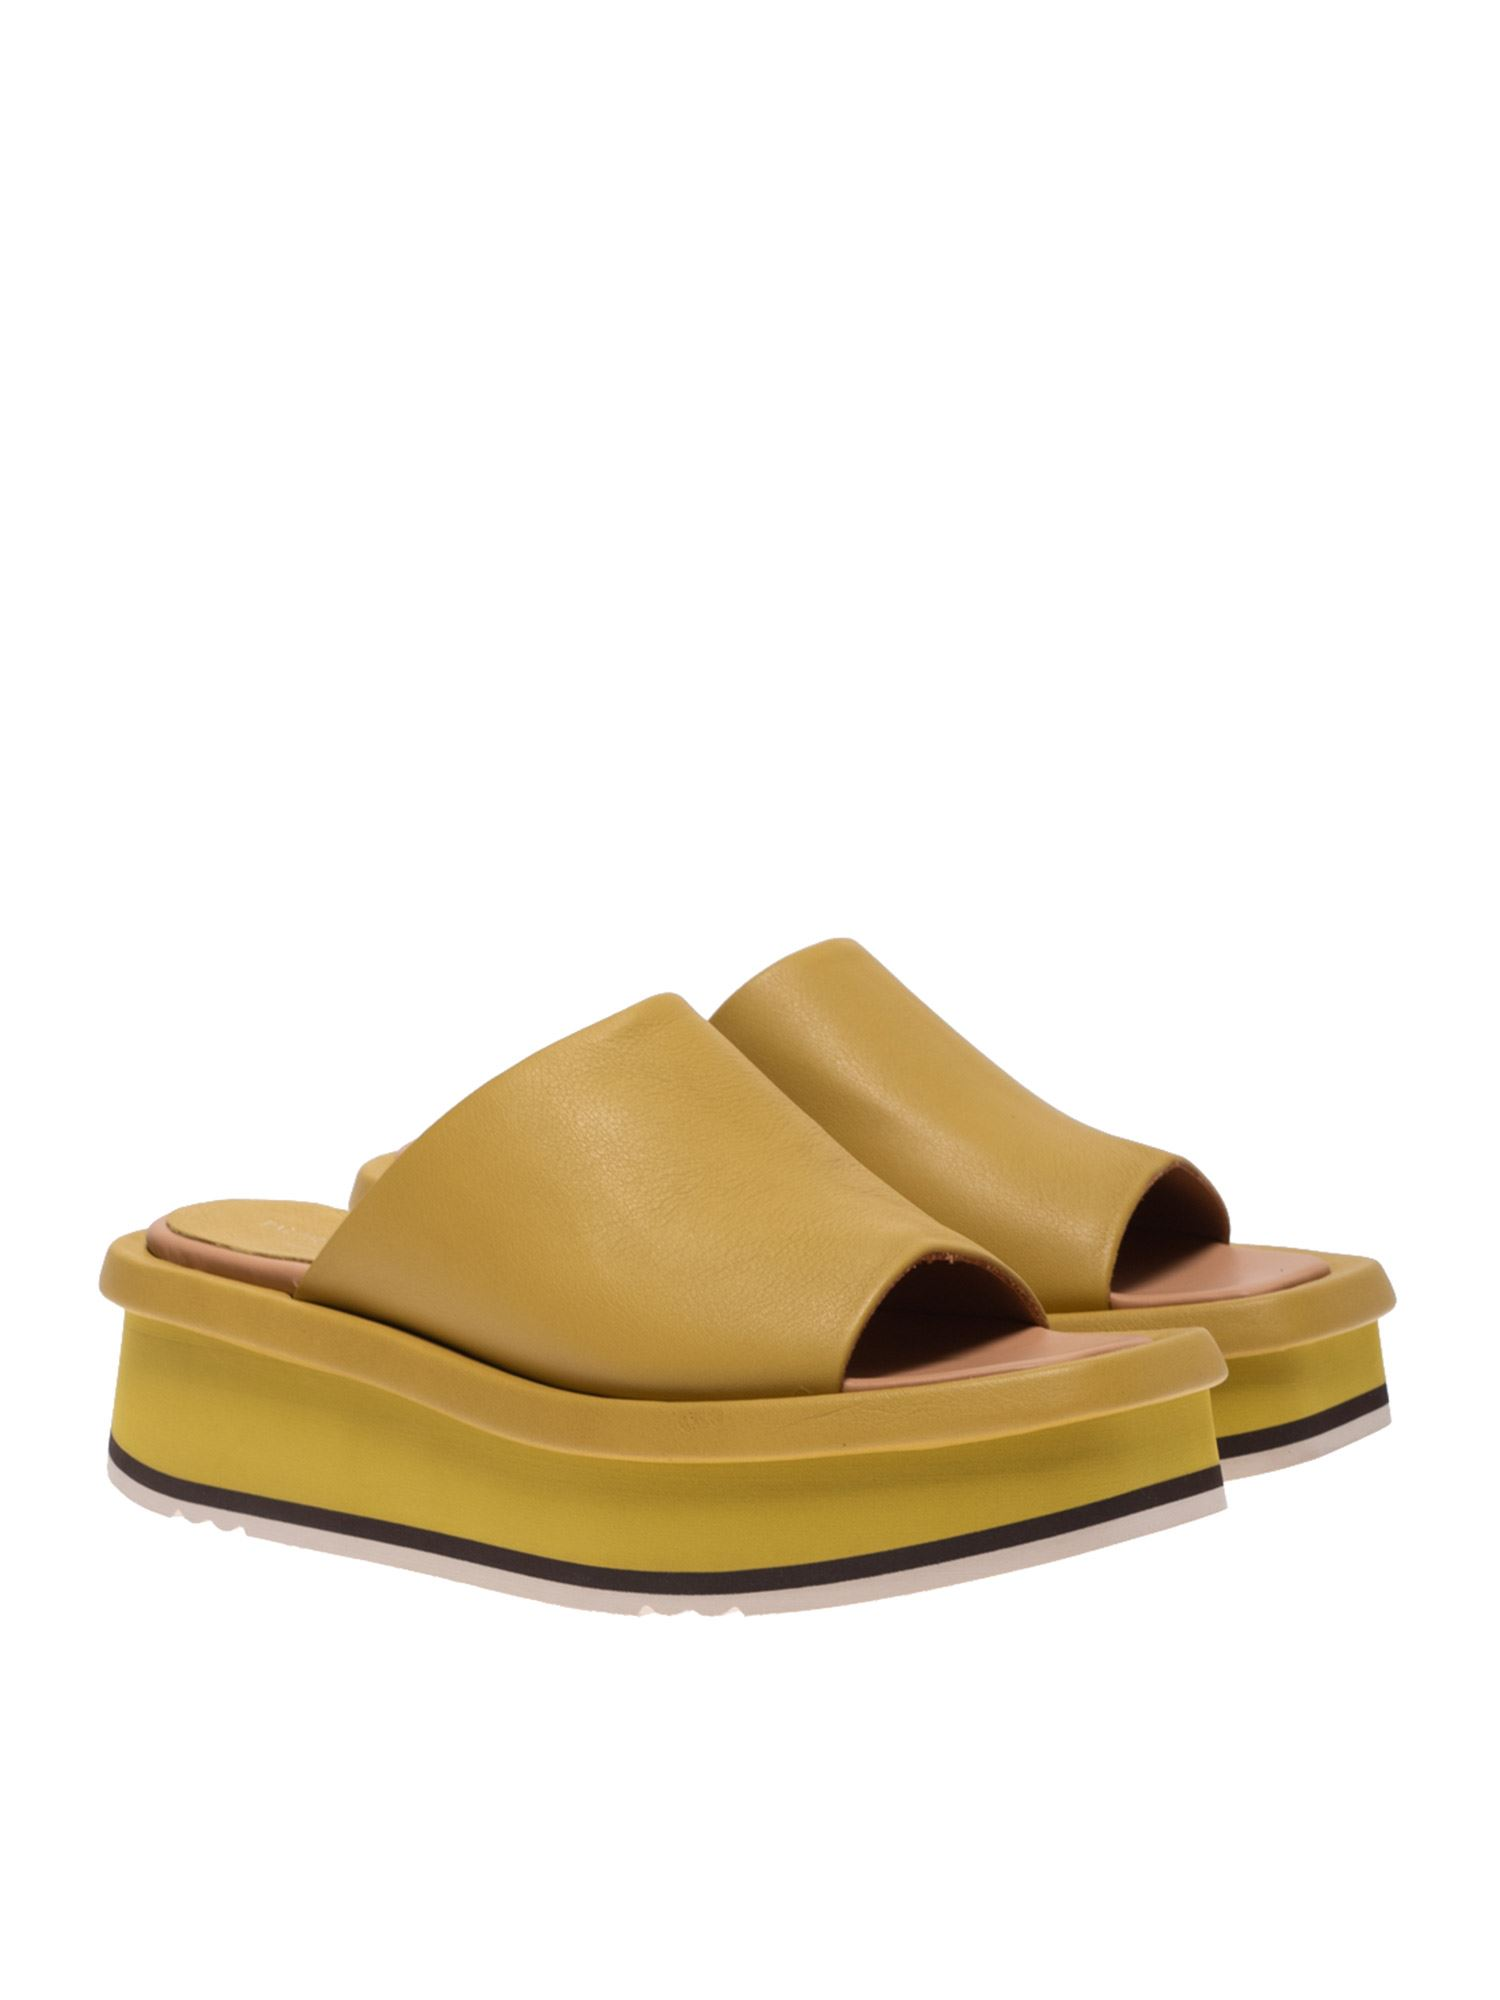 Paloma Barceló MAICI SANDALS IN OCHER COLOR